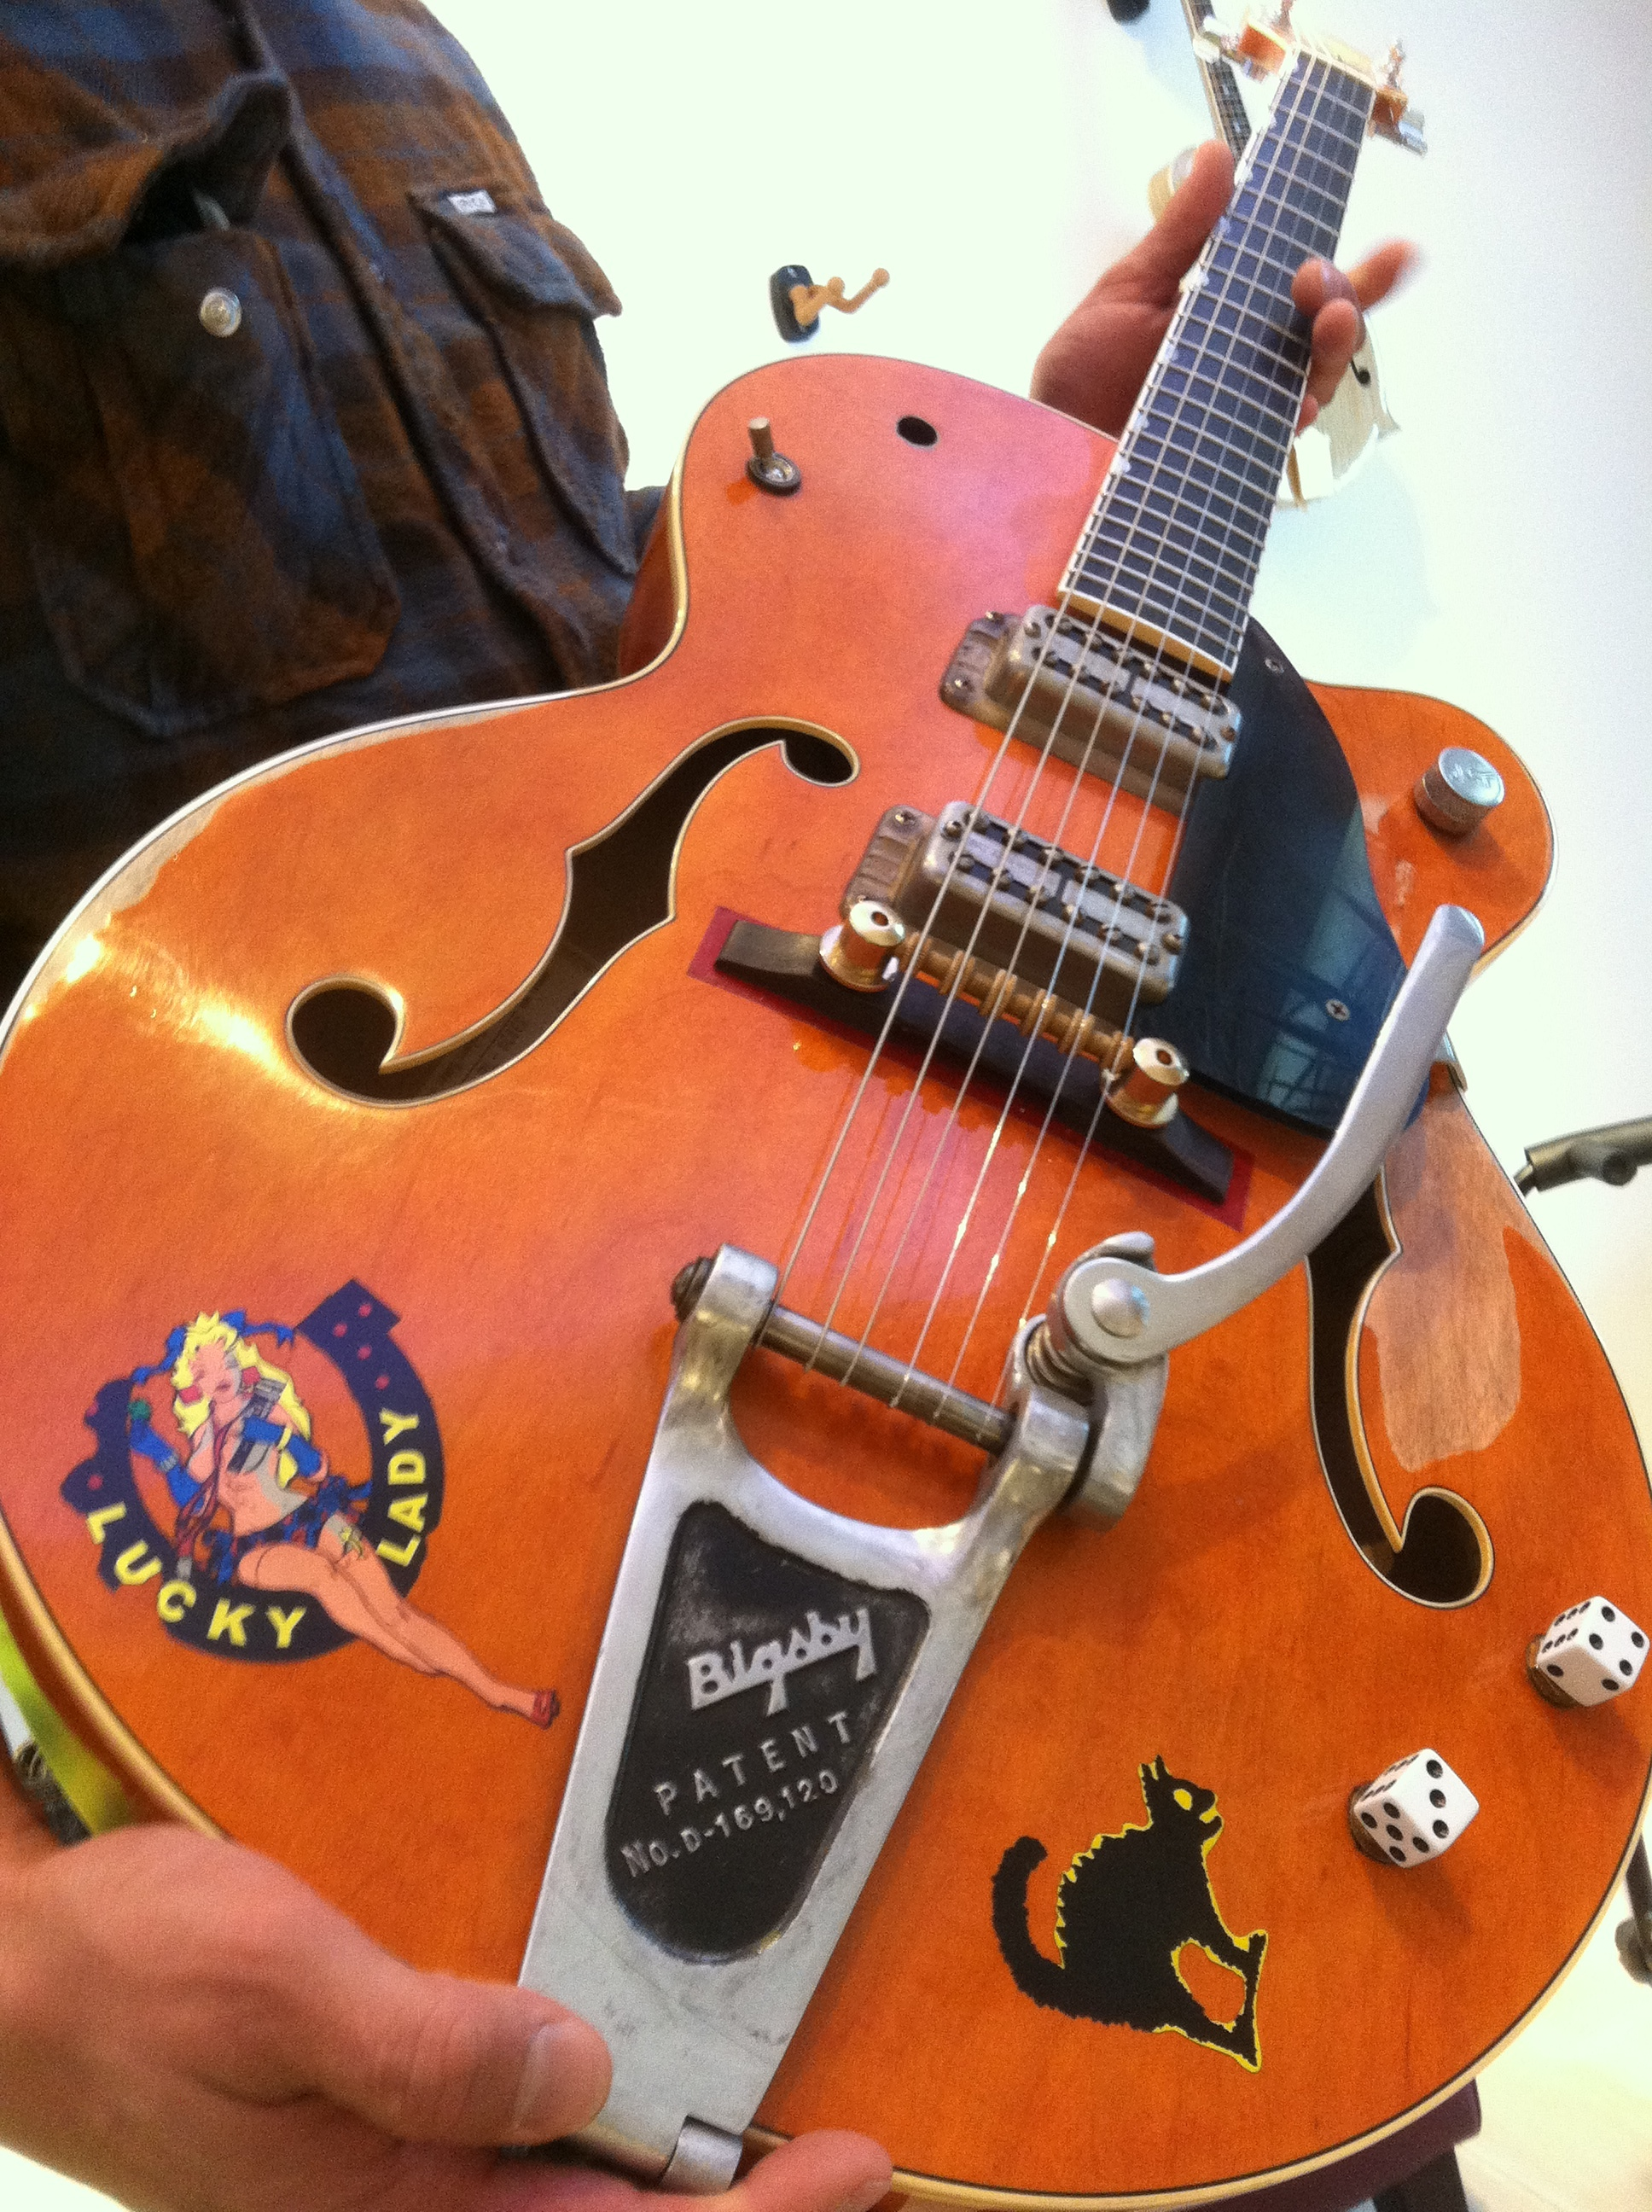 Brian setzer pin striped guitar